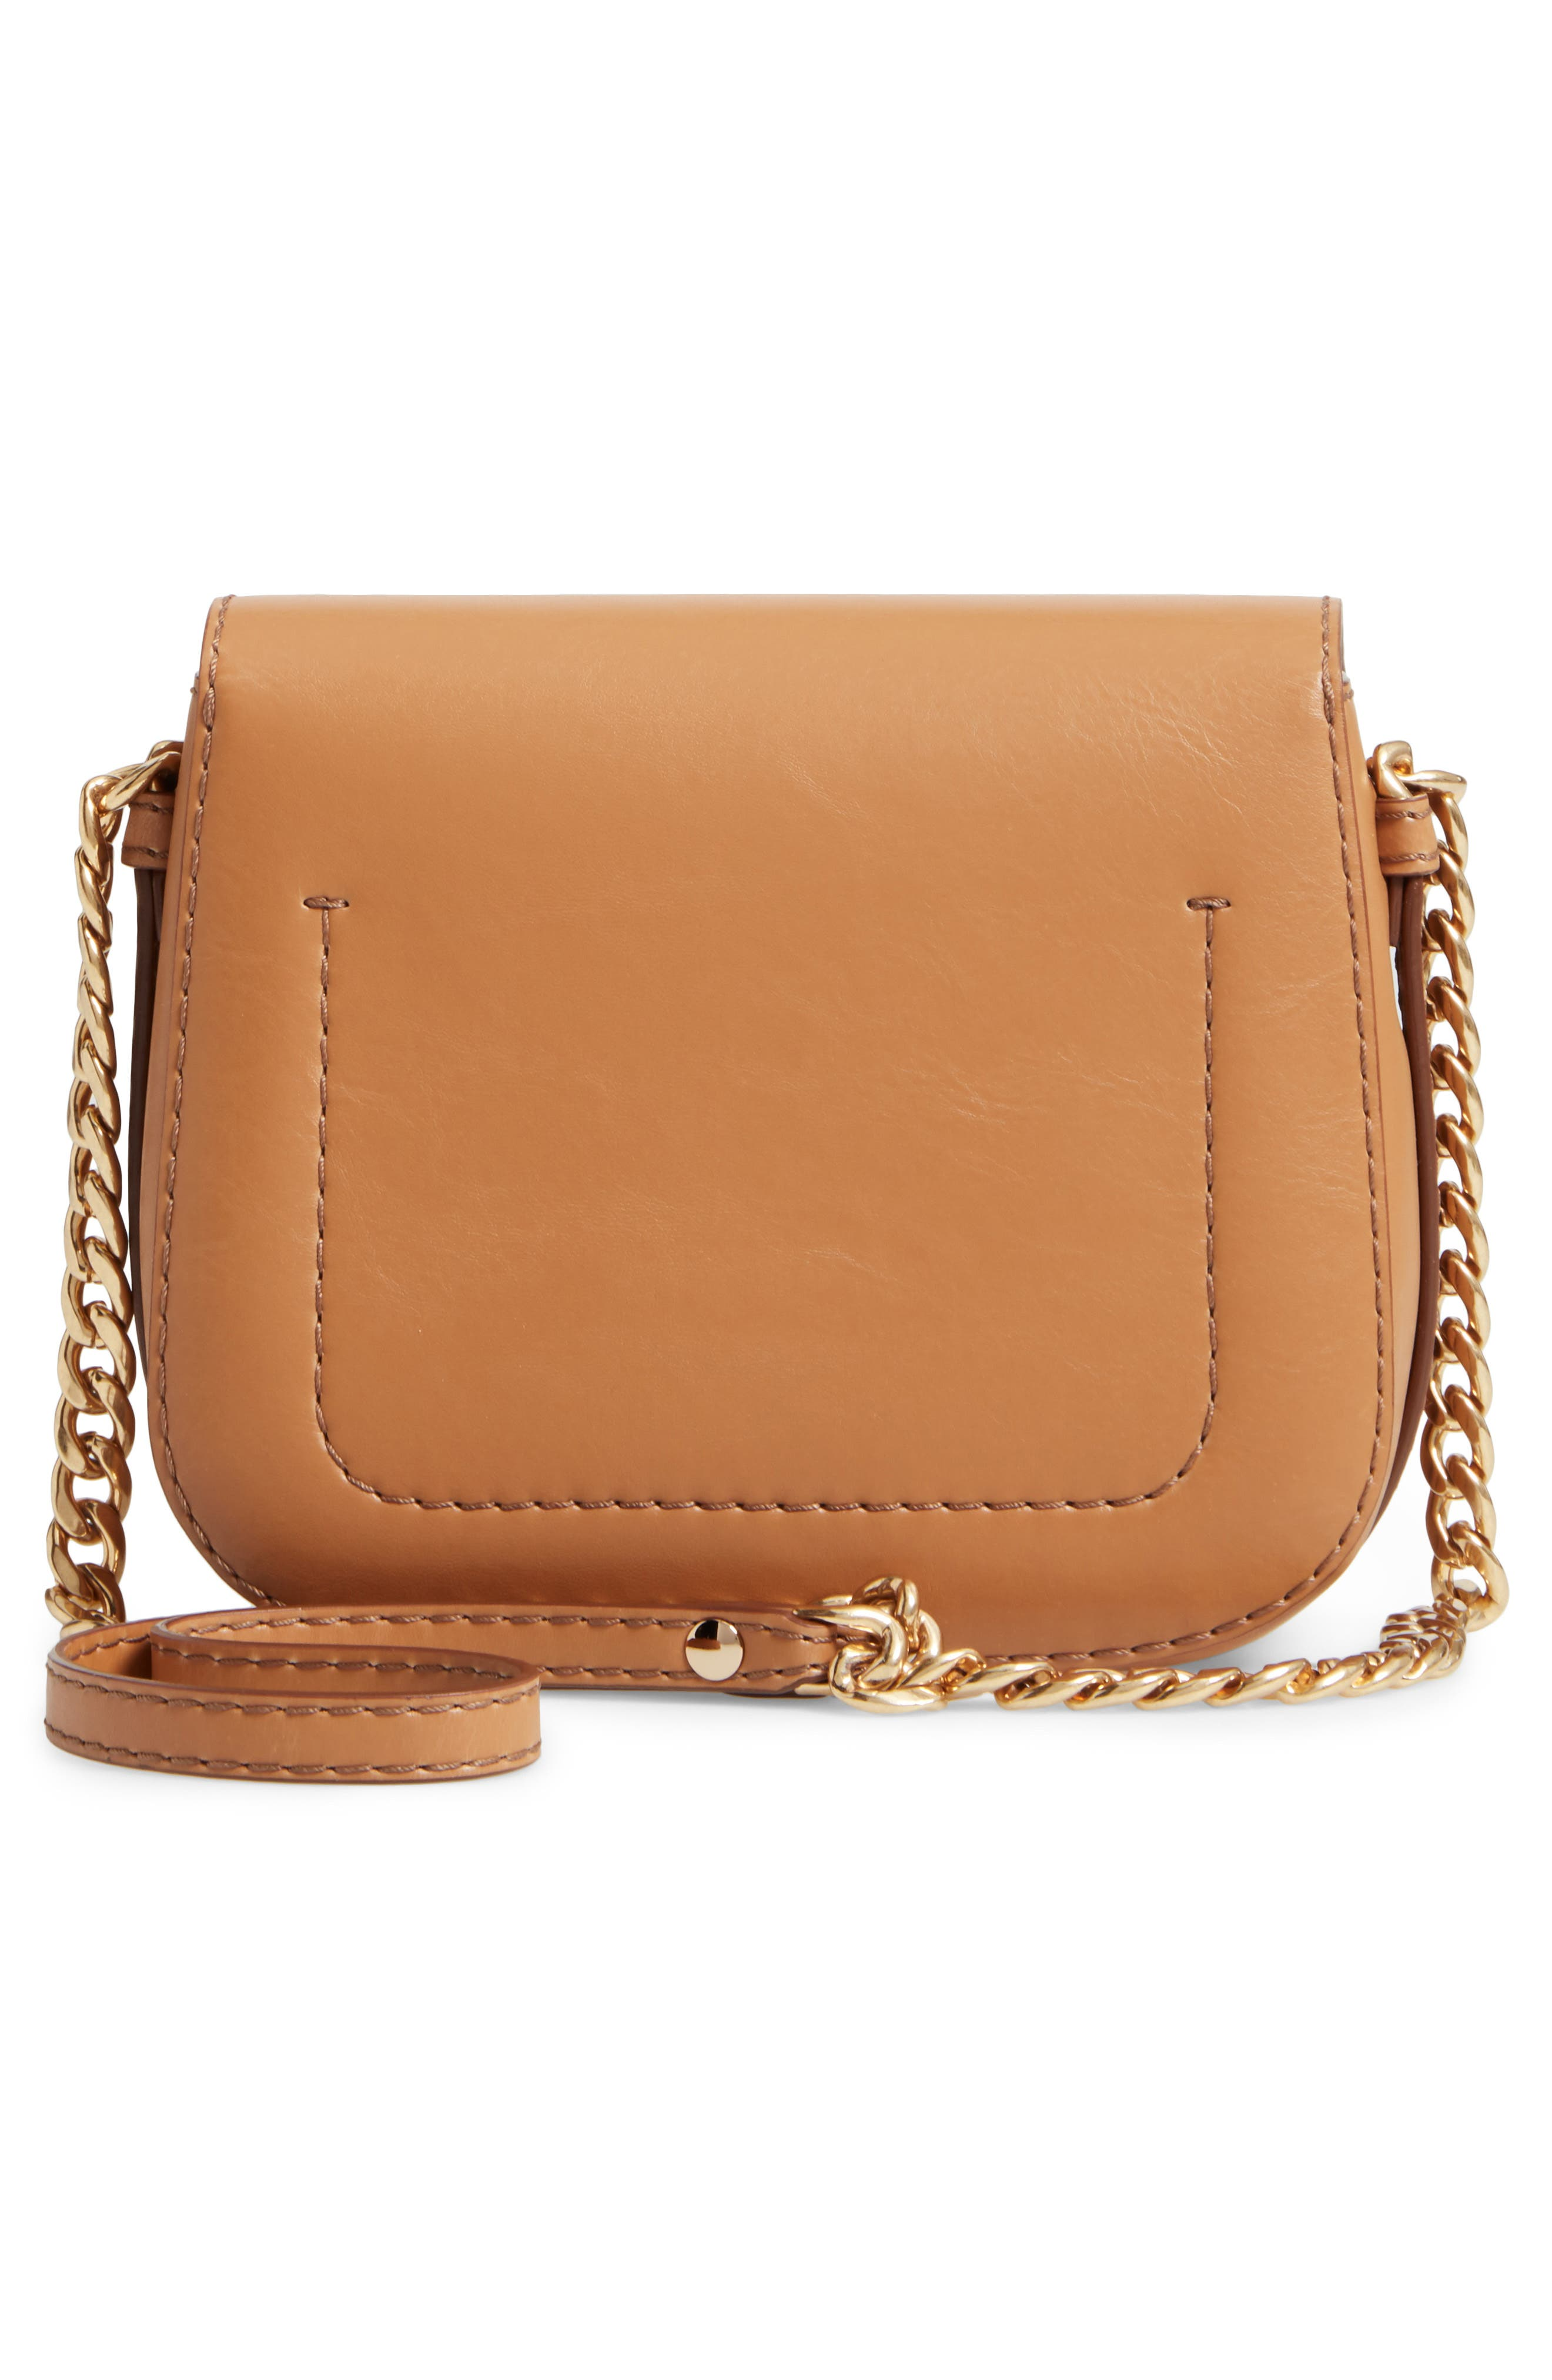 Textured Faux Leather Crossbody Bag,                             Alternate thumbnail 3, color,                             Camel